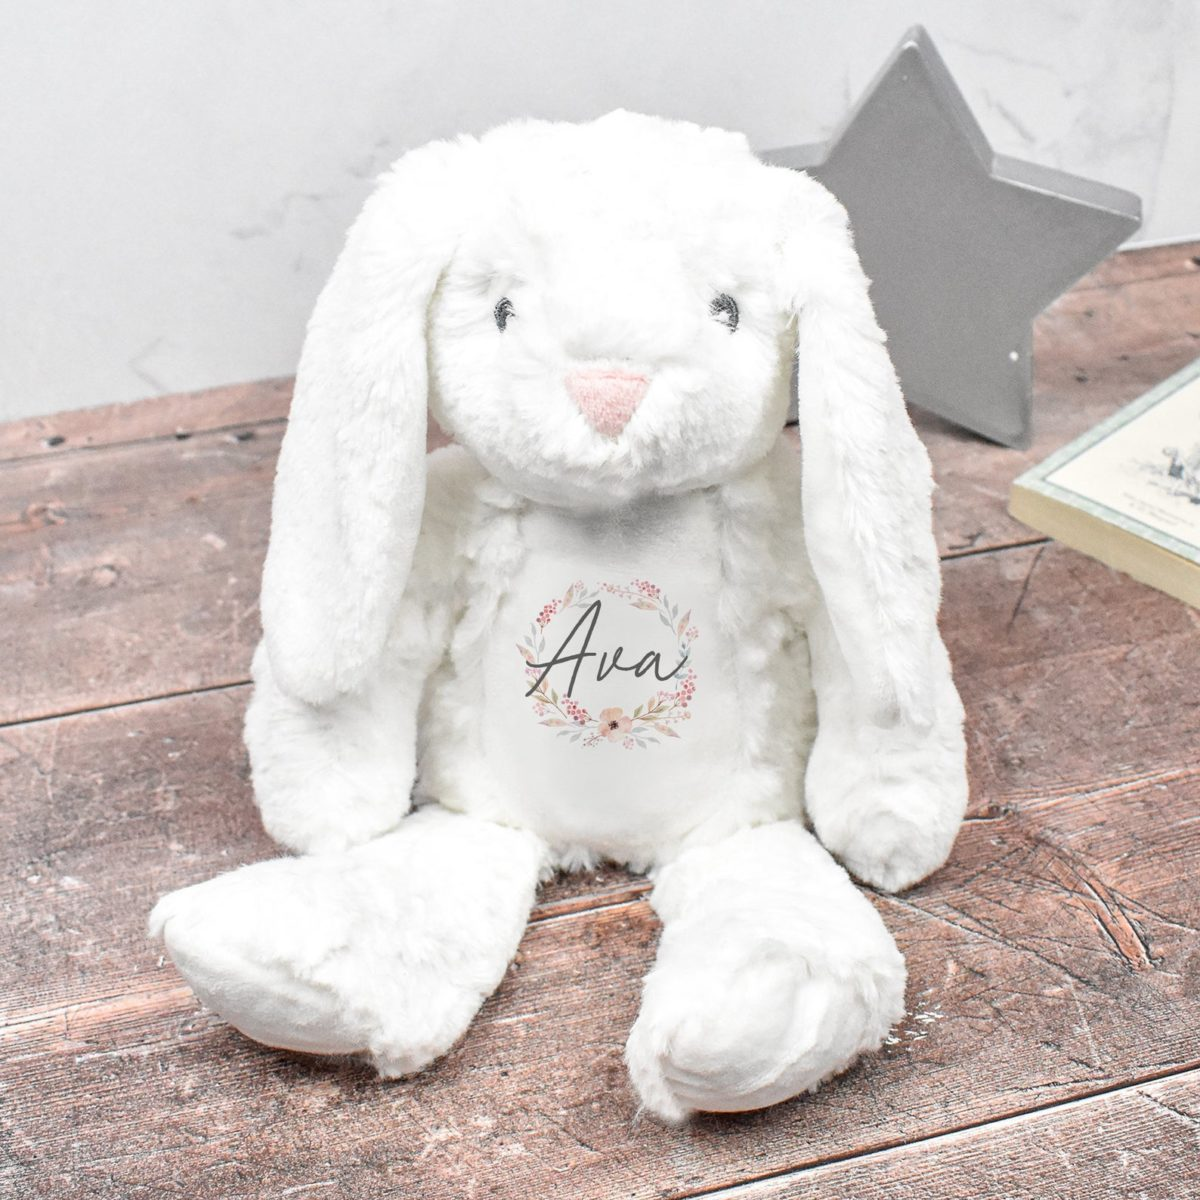 15 personalized baby products perfect for any nursery or baby shower | parenting questions | mamas uncut il 1588xn.2772311208 adtt